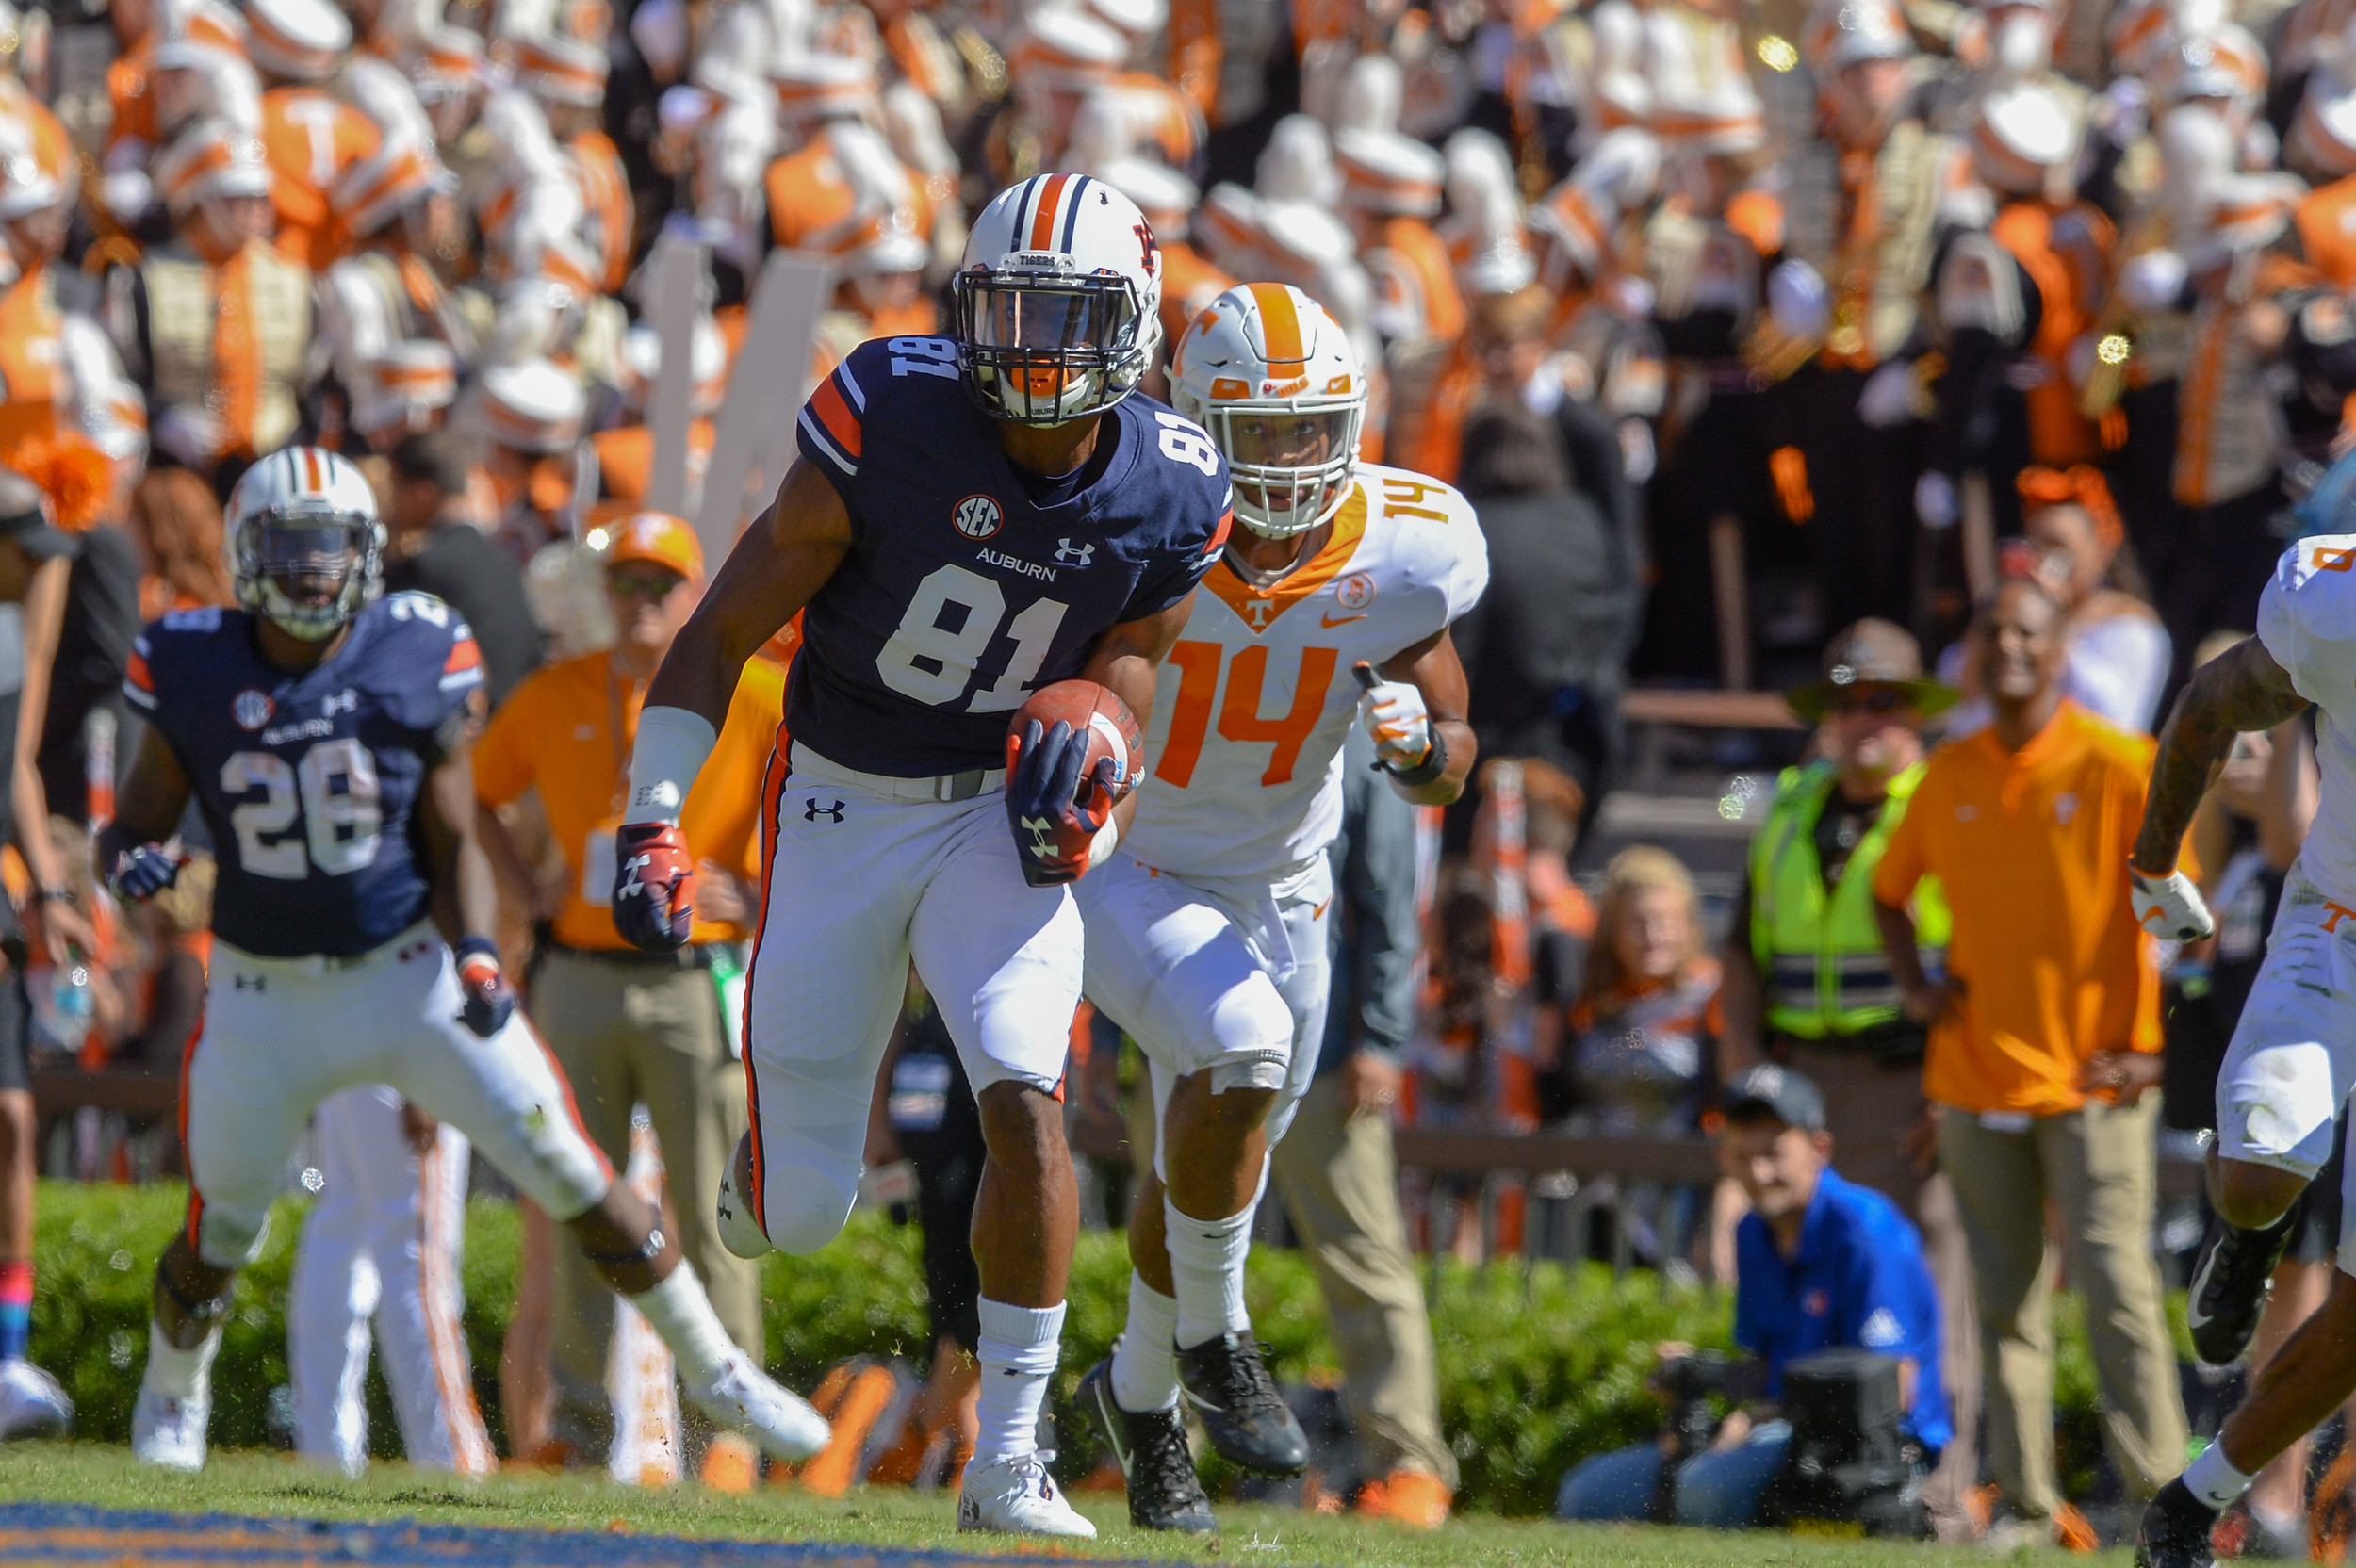 Auburn Tigers wide receiver Darius Slayton (81) is chased by Tennessee Volunteers linebacker Quart'e Sapp (14) during the first half of Saturday's game, at Jordan-Hare Stadium in Auburn, AL. Daily Mountain Eagle -  Jeff Johnsey